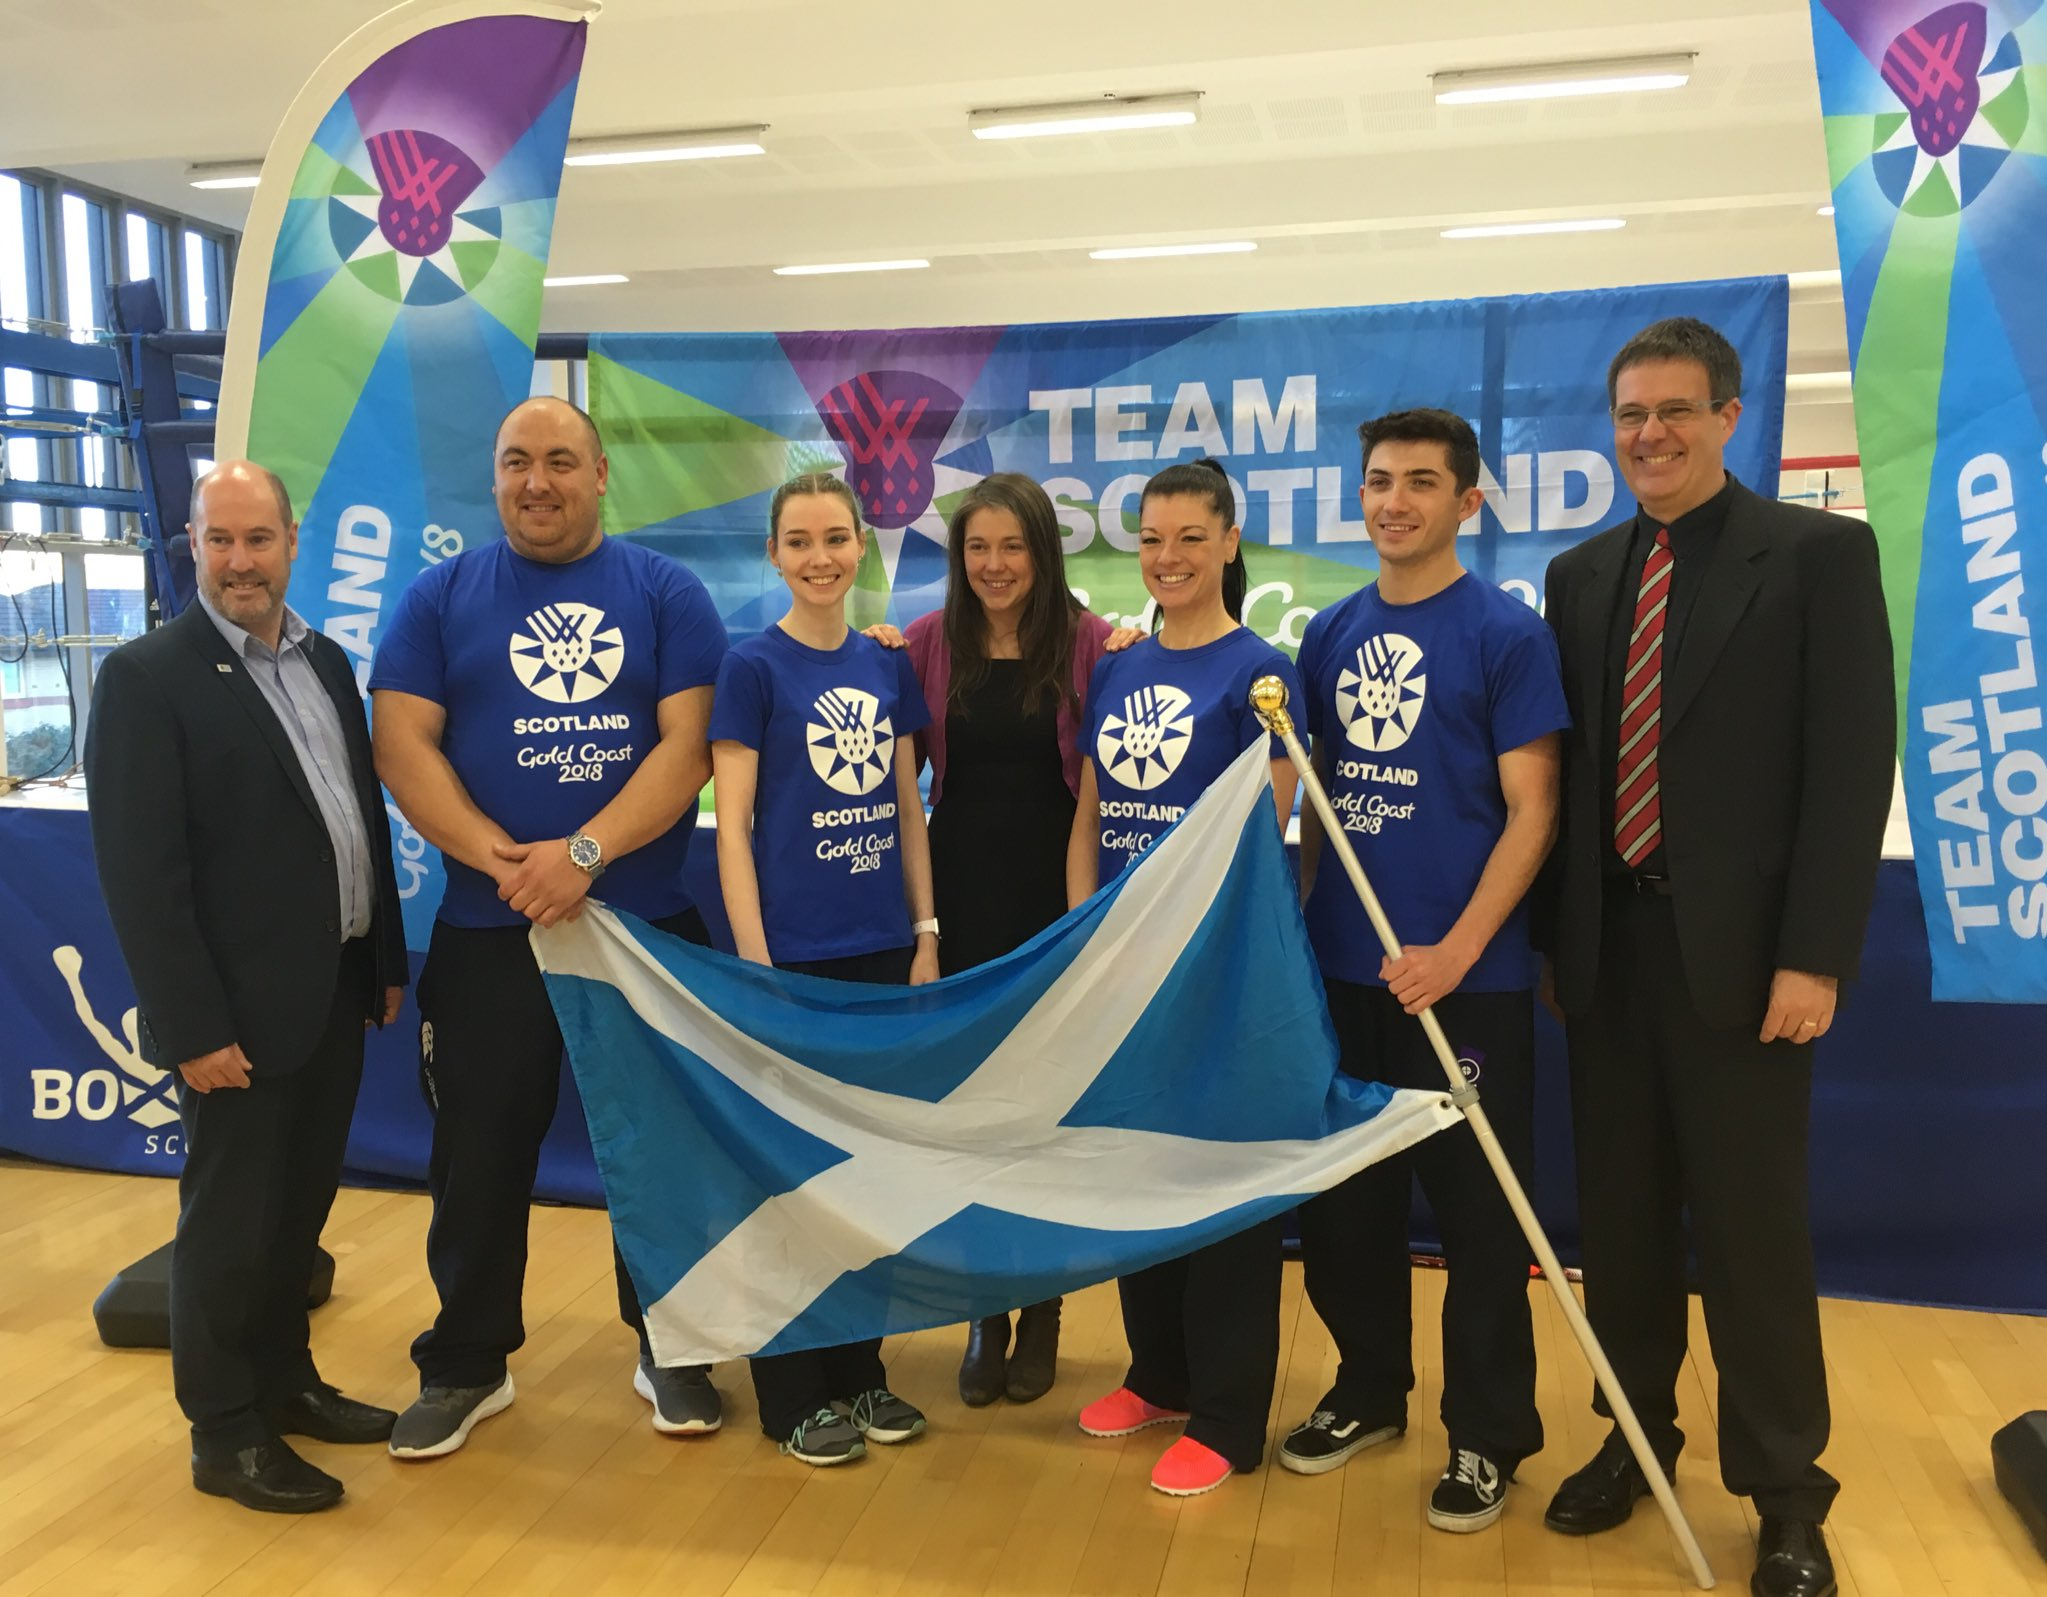 Team Scotland Chef de Mission, Jon Doig OBE, and Minister for Public Health & Sport, Aileen Campbell MSP, joins the Shooting Team Manager, Donald McIntosh, and some of the shooting team selected for Team Scotland at the announcement on St Andrews Day.